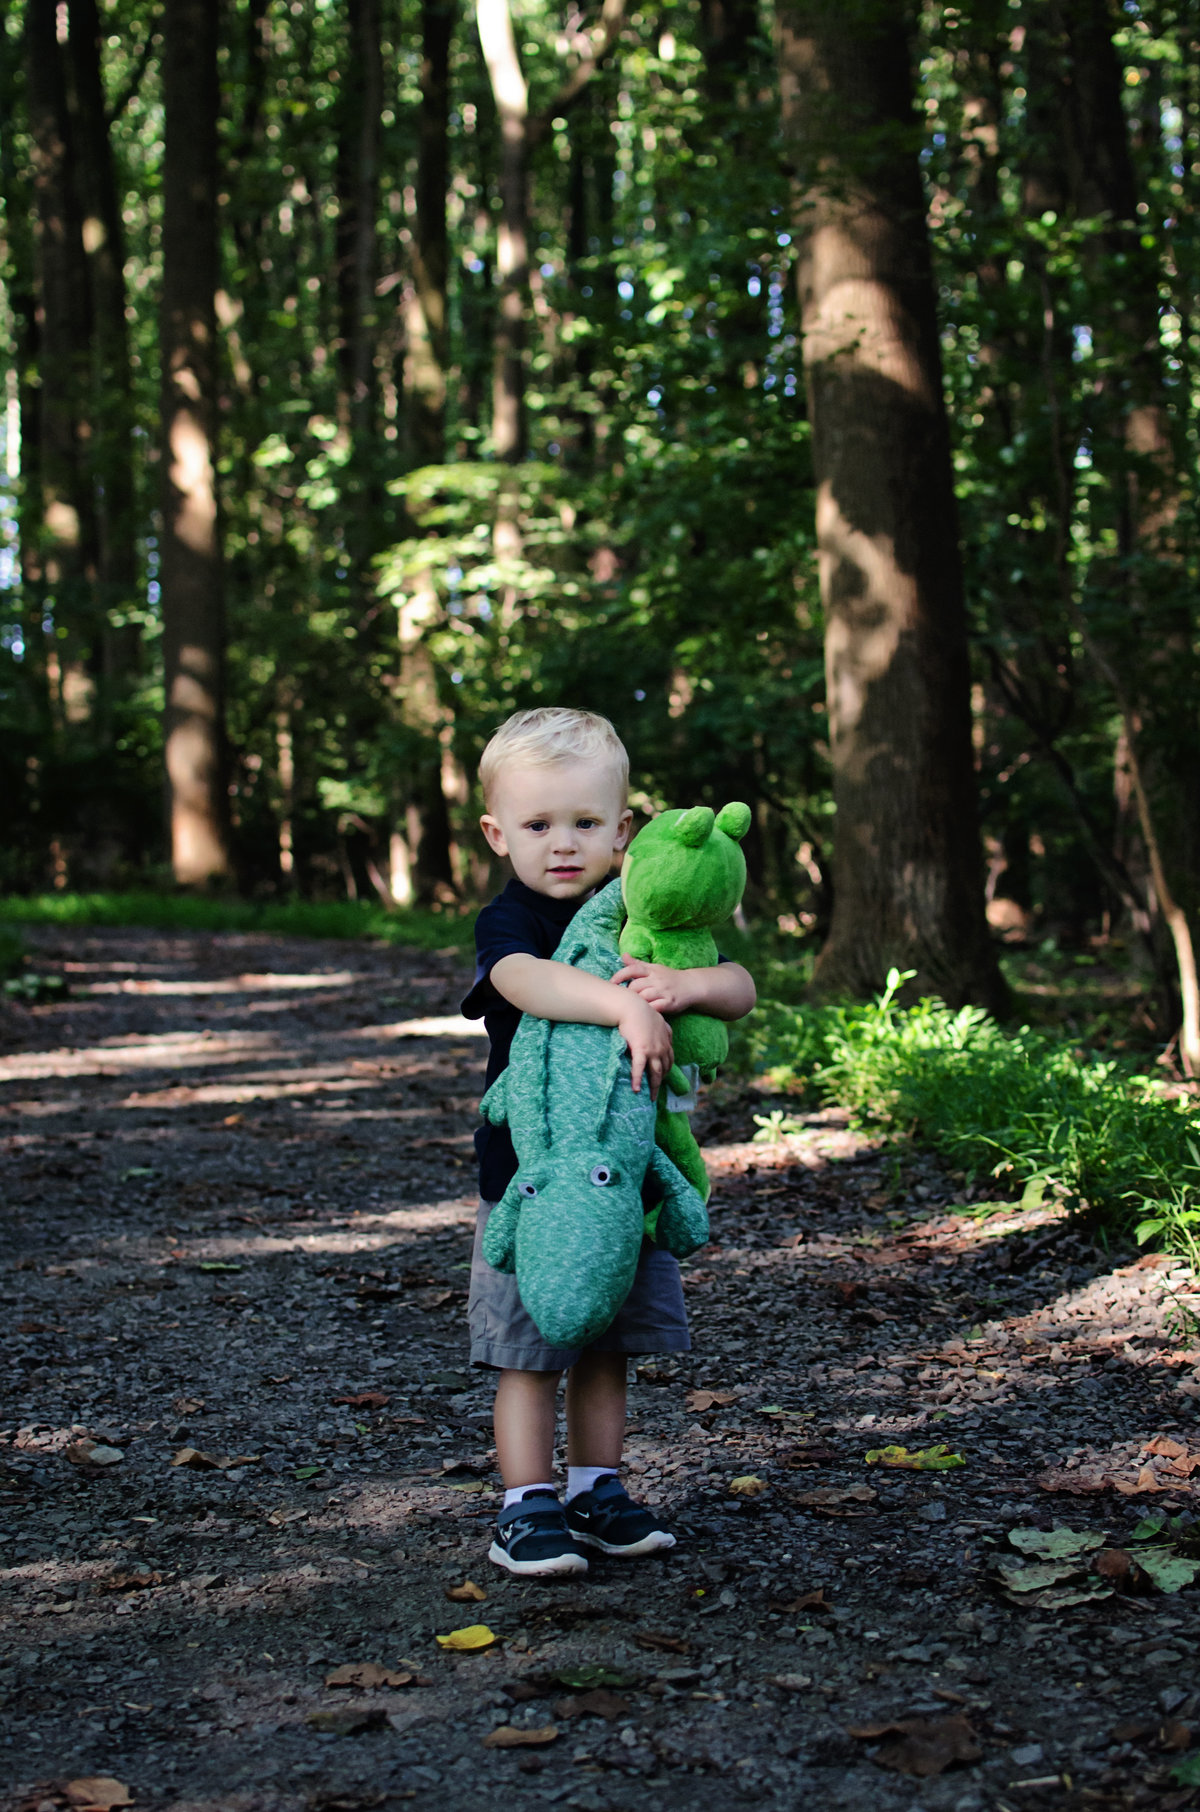 Portrait of a little boy and his stuffed alligator during a lifestyle session at Nottoway Park in Northern Virginia taken by Sarah Alice Photography